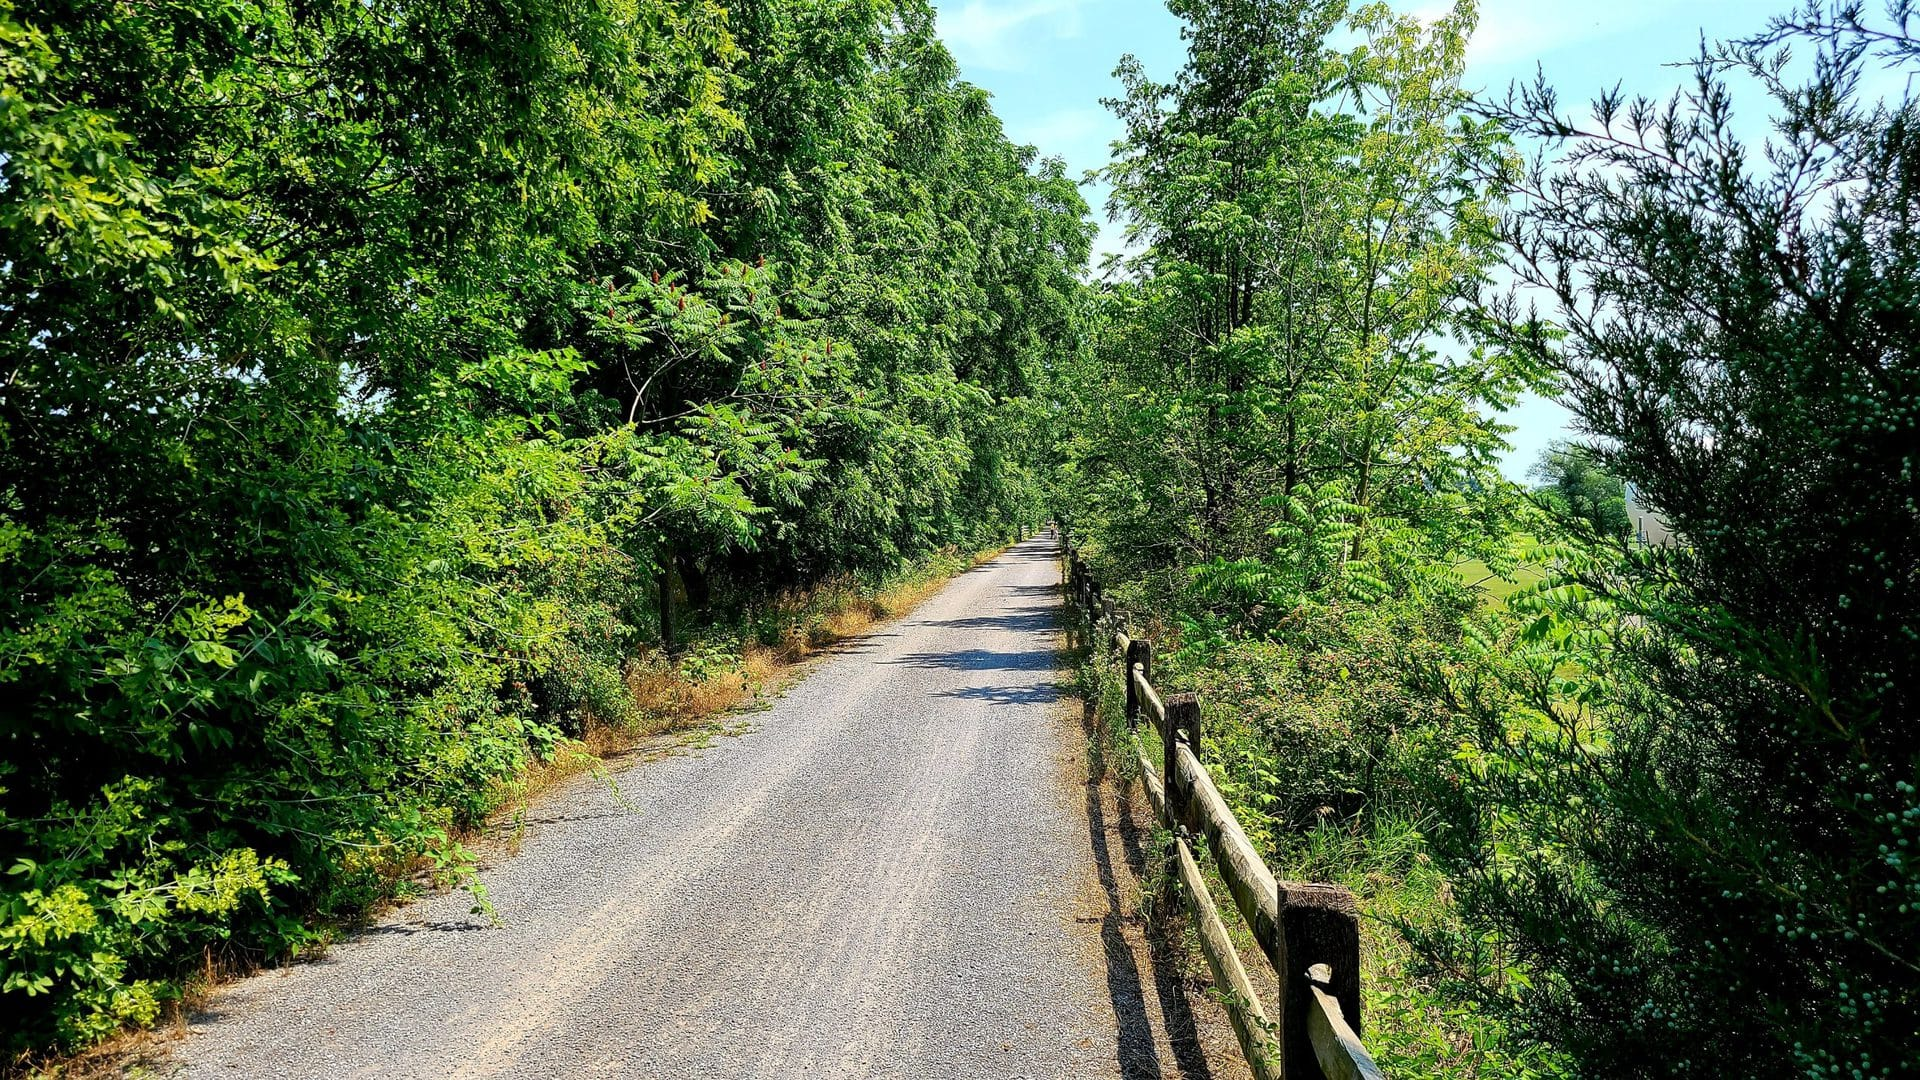 The rail trail runs through a thick patch of trees. An old wooden fence runs along the right hand side of the trail. The trail surface is finely crushed gravel.